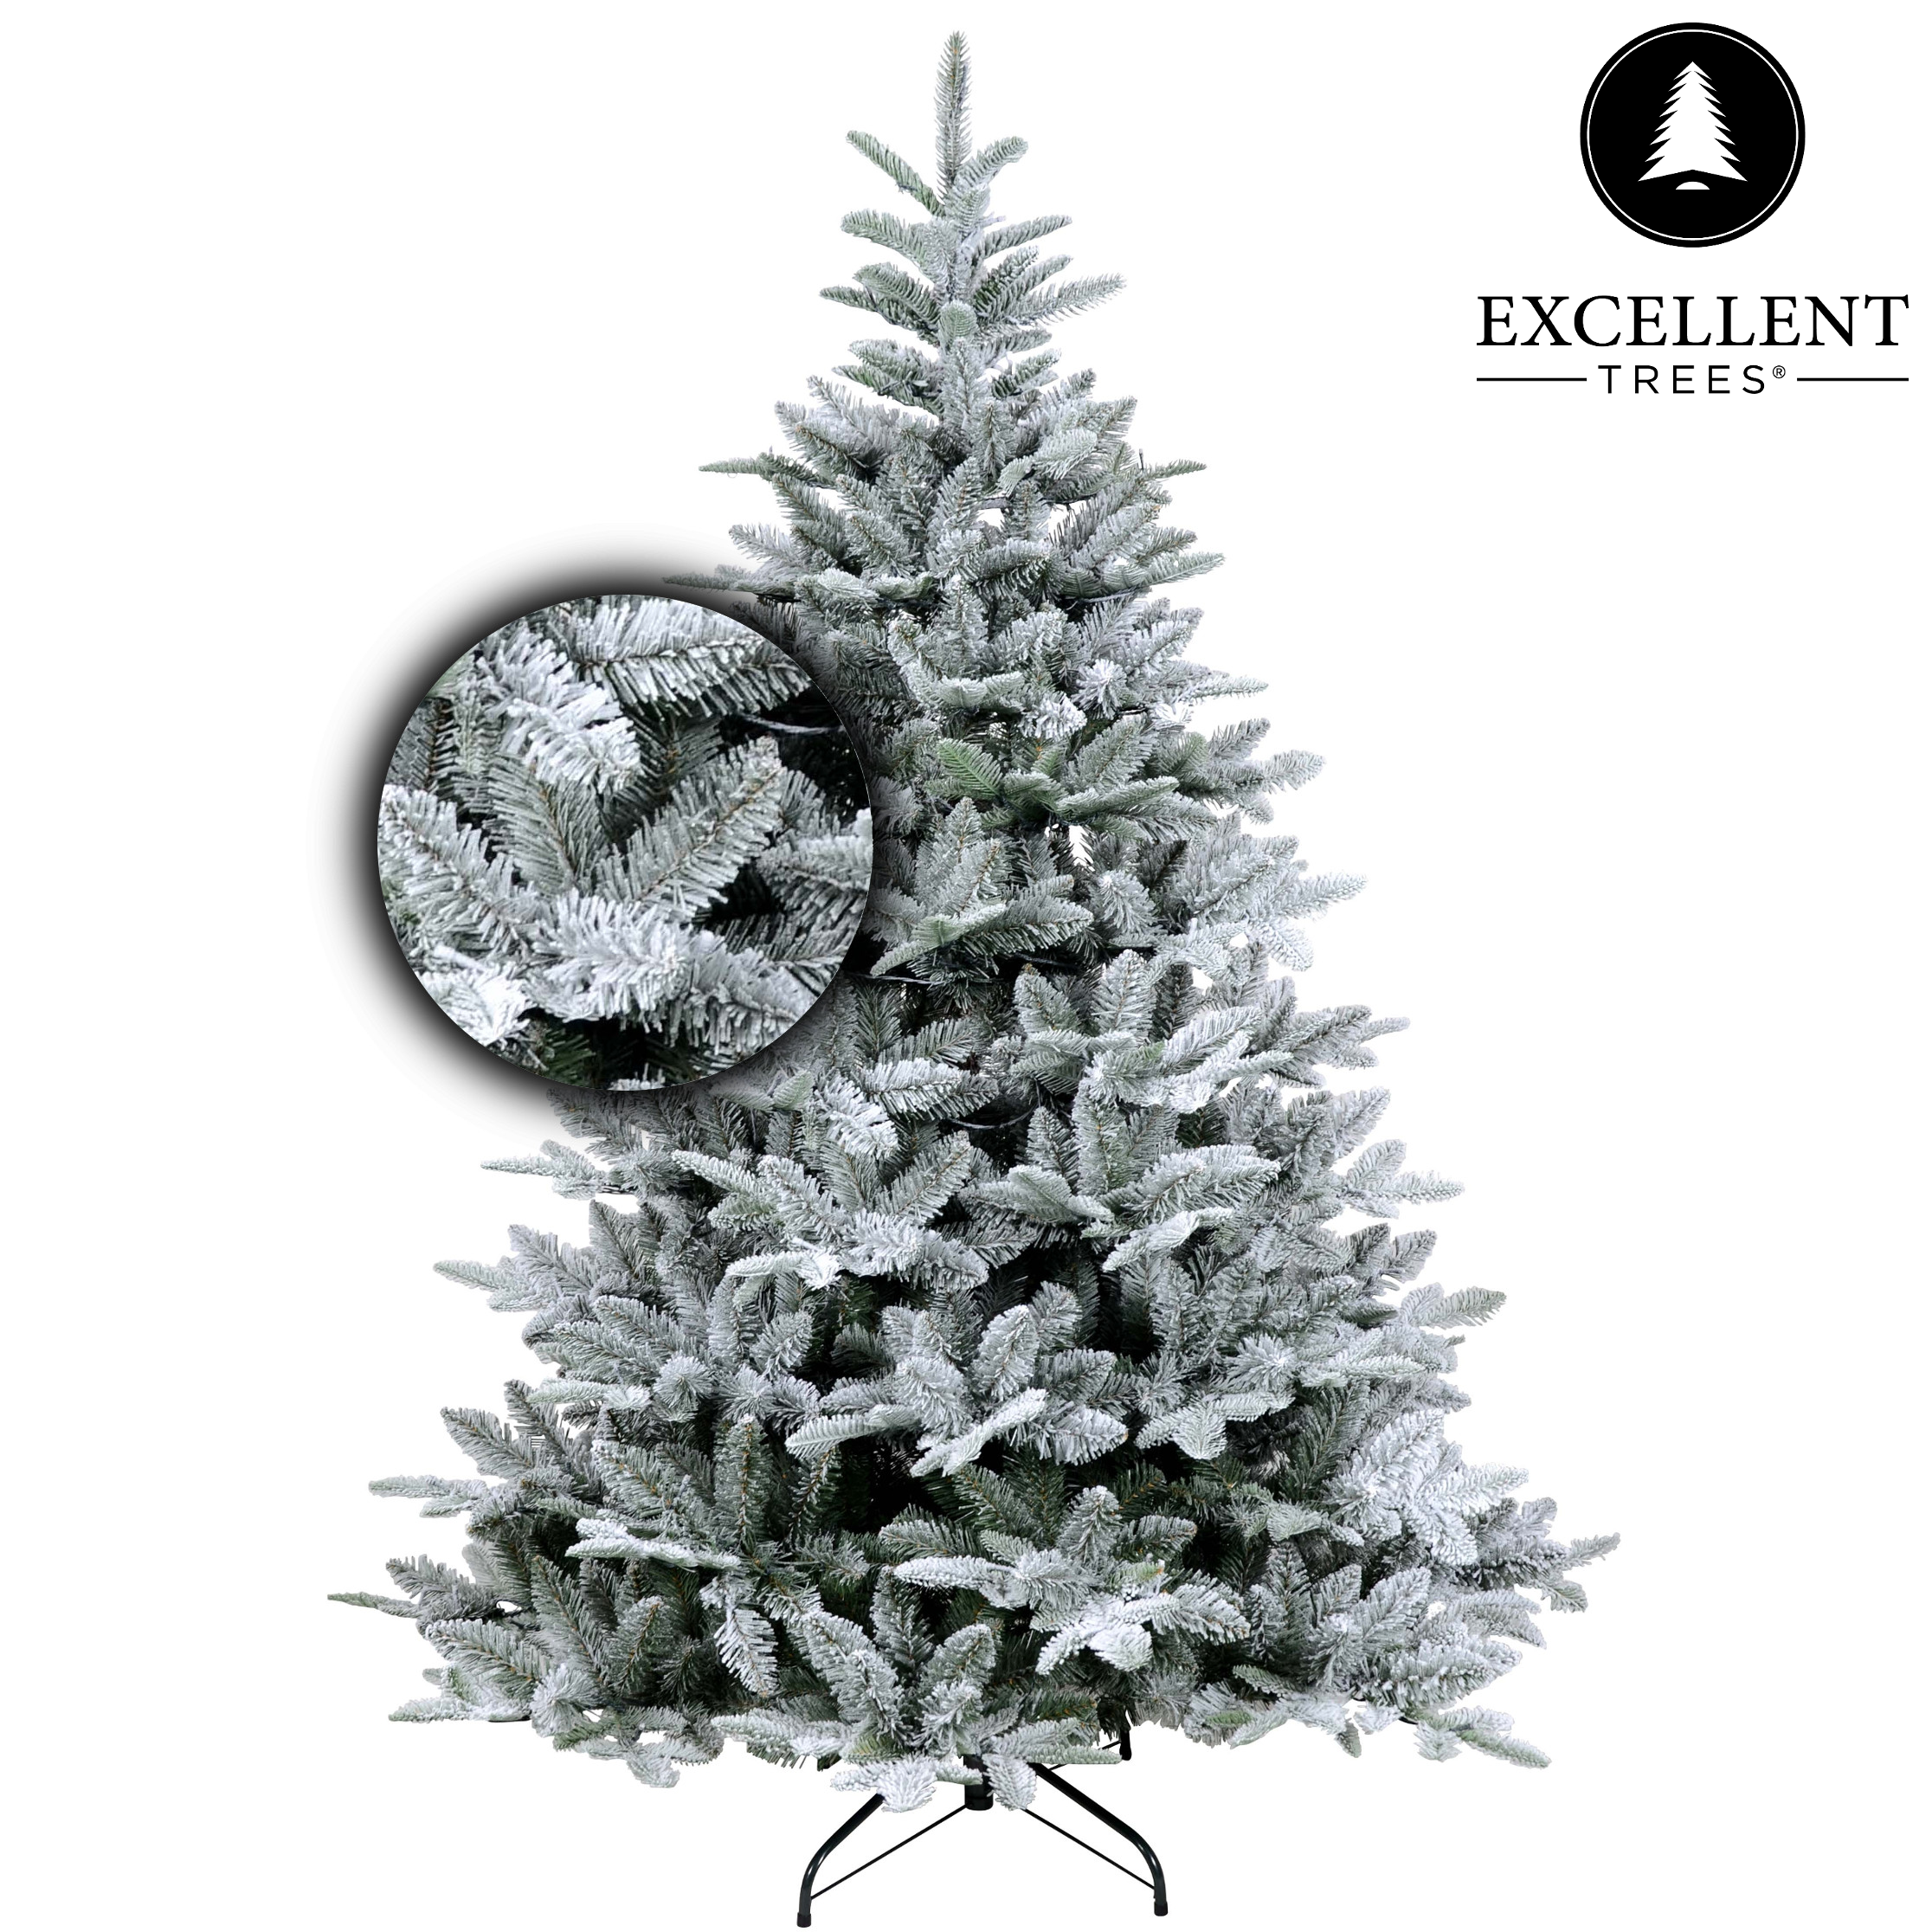 Excellent Trees® Otta 210 cm